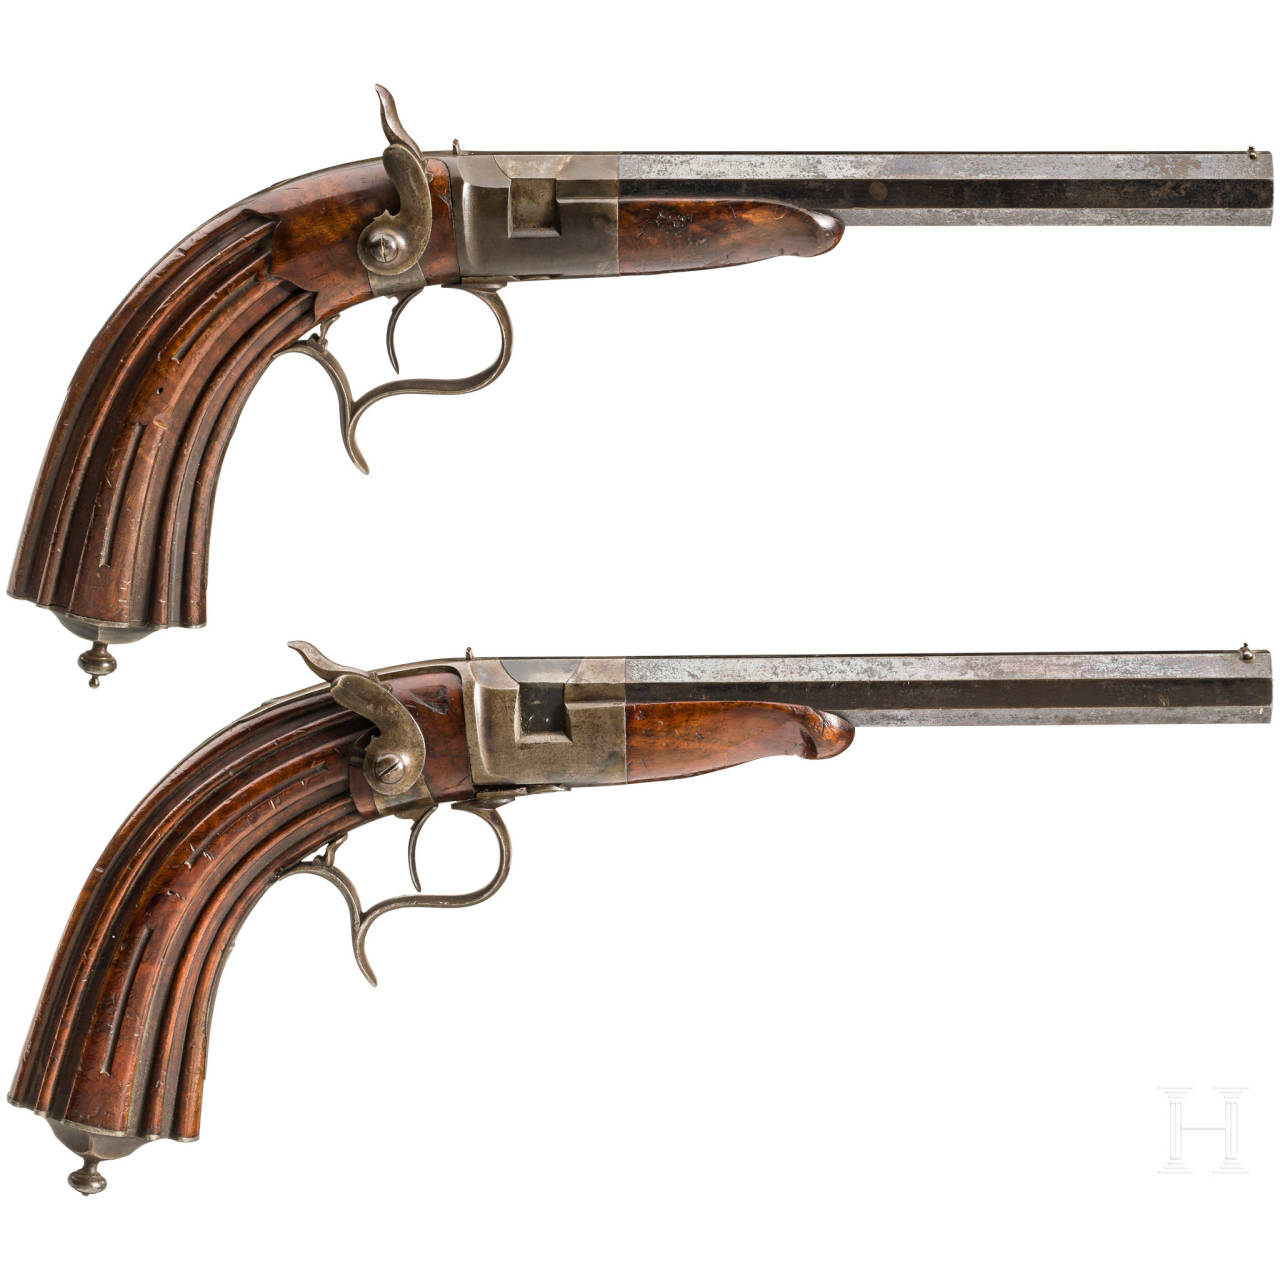 A pair of percussion pistols for indoor shooting, South German, ca. 1850